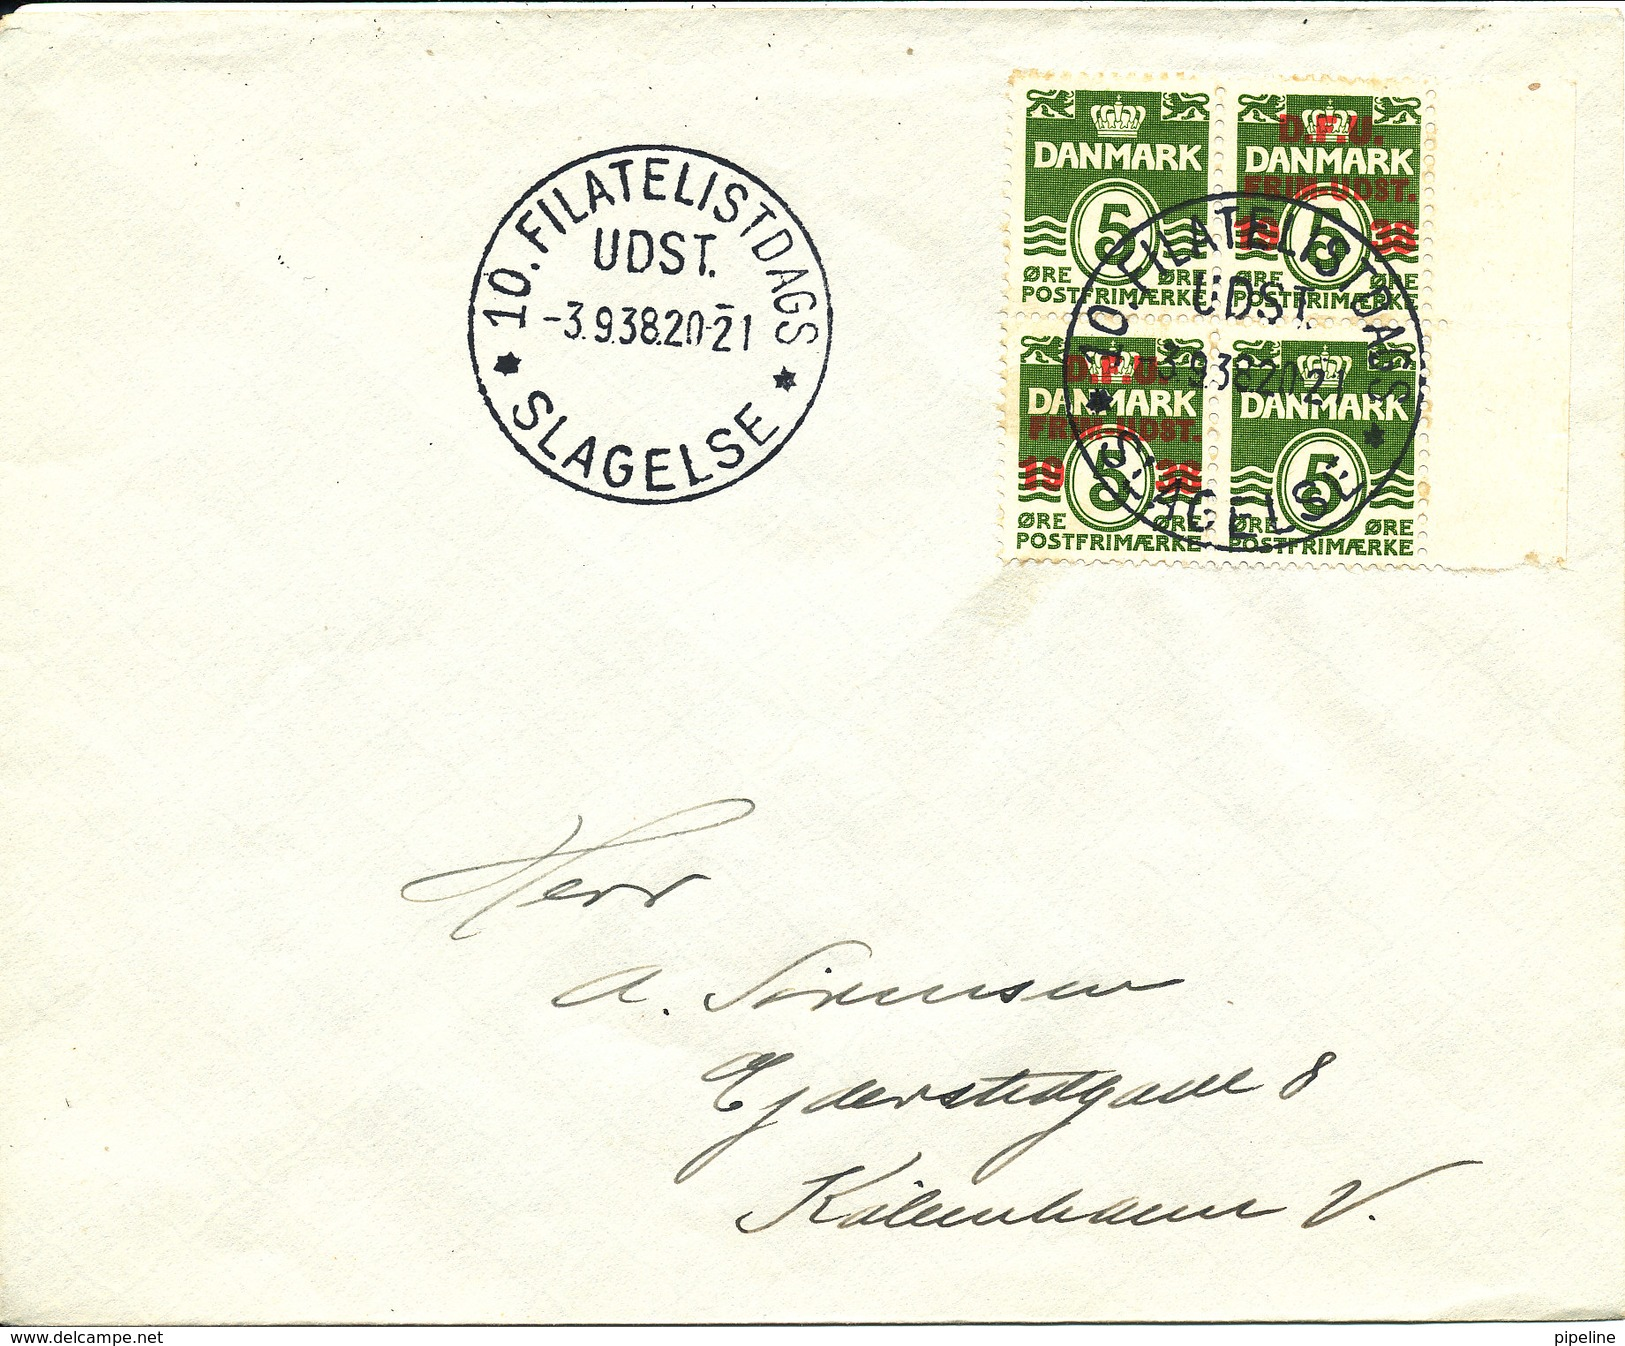 Denmark Cover Stamp Exhibition 3-9-1938 Slagelse With The Good Block Of 4 DFU - Expositions Philatéliques